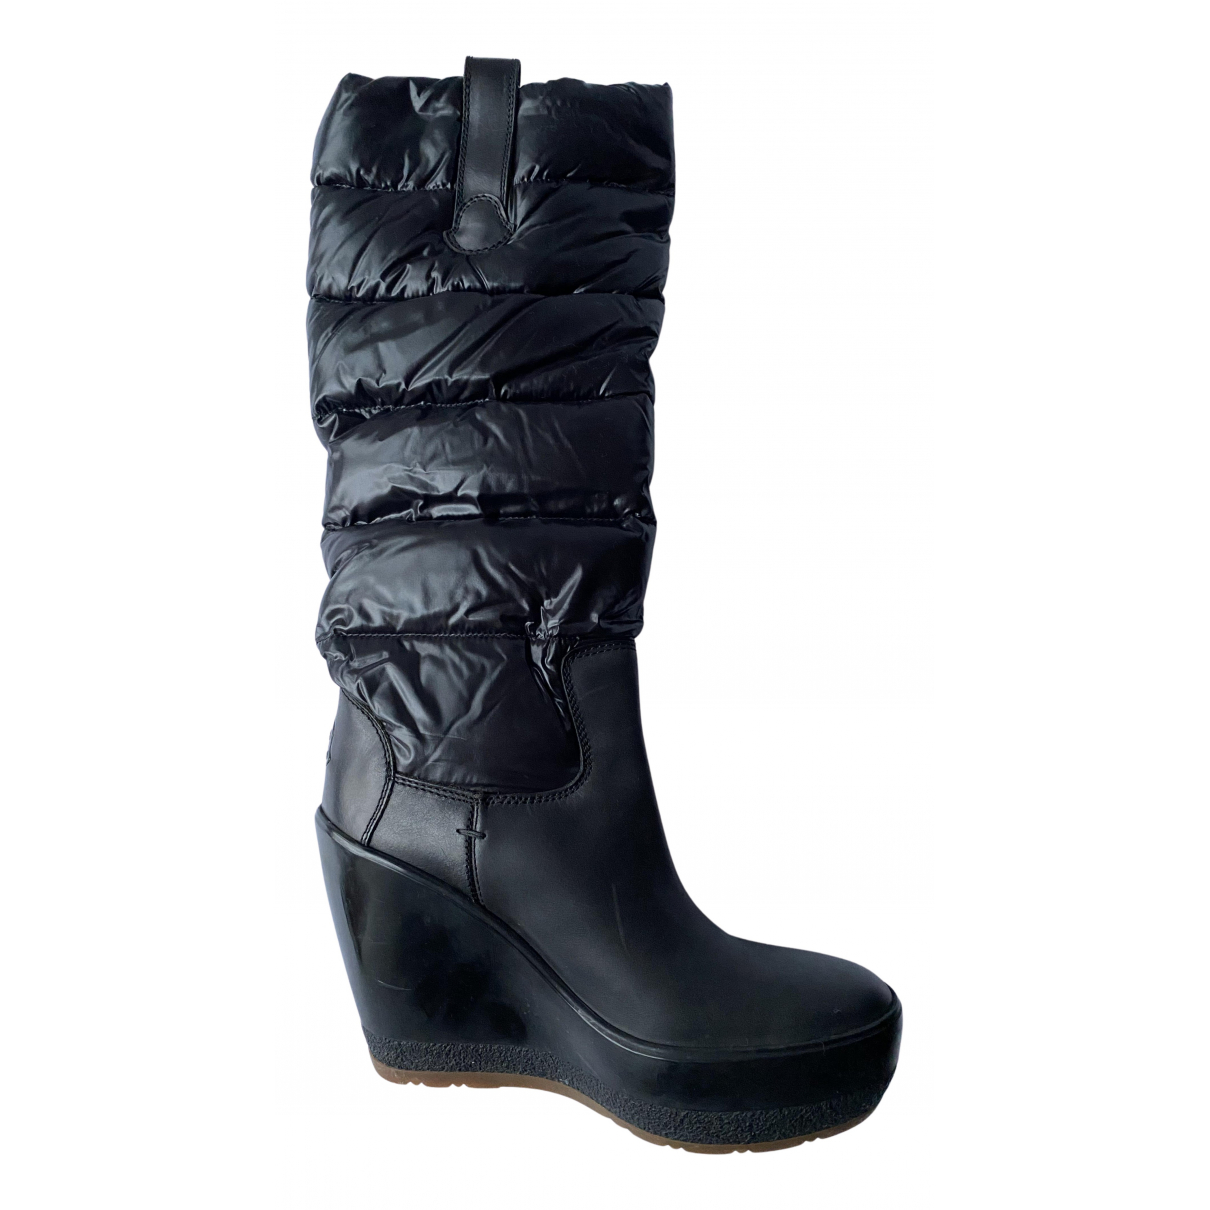 Moncler N Black Leather Boots for Women 39 IT